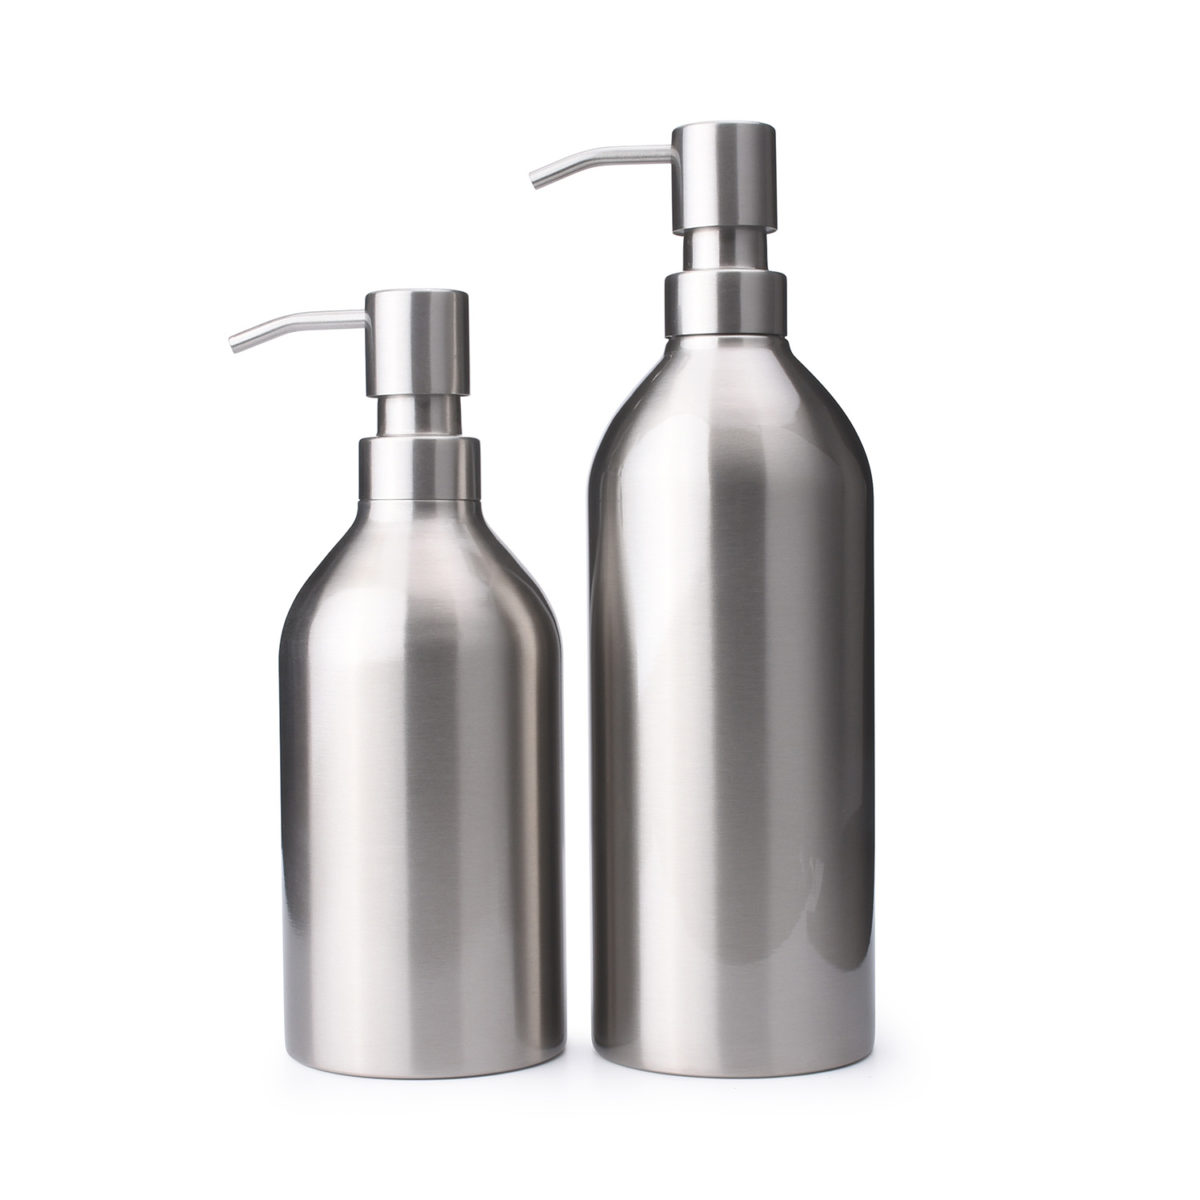 wholesale stainless steel sanitizer dispenser